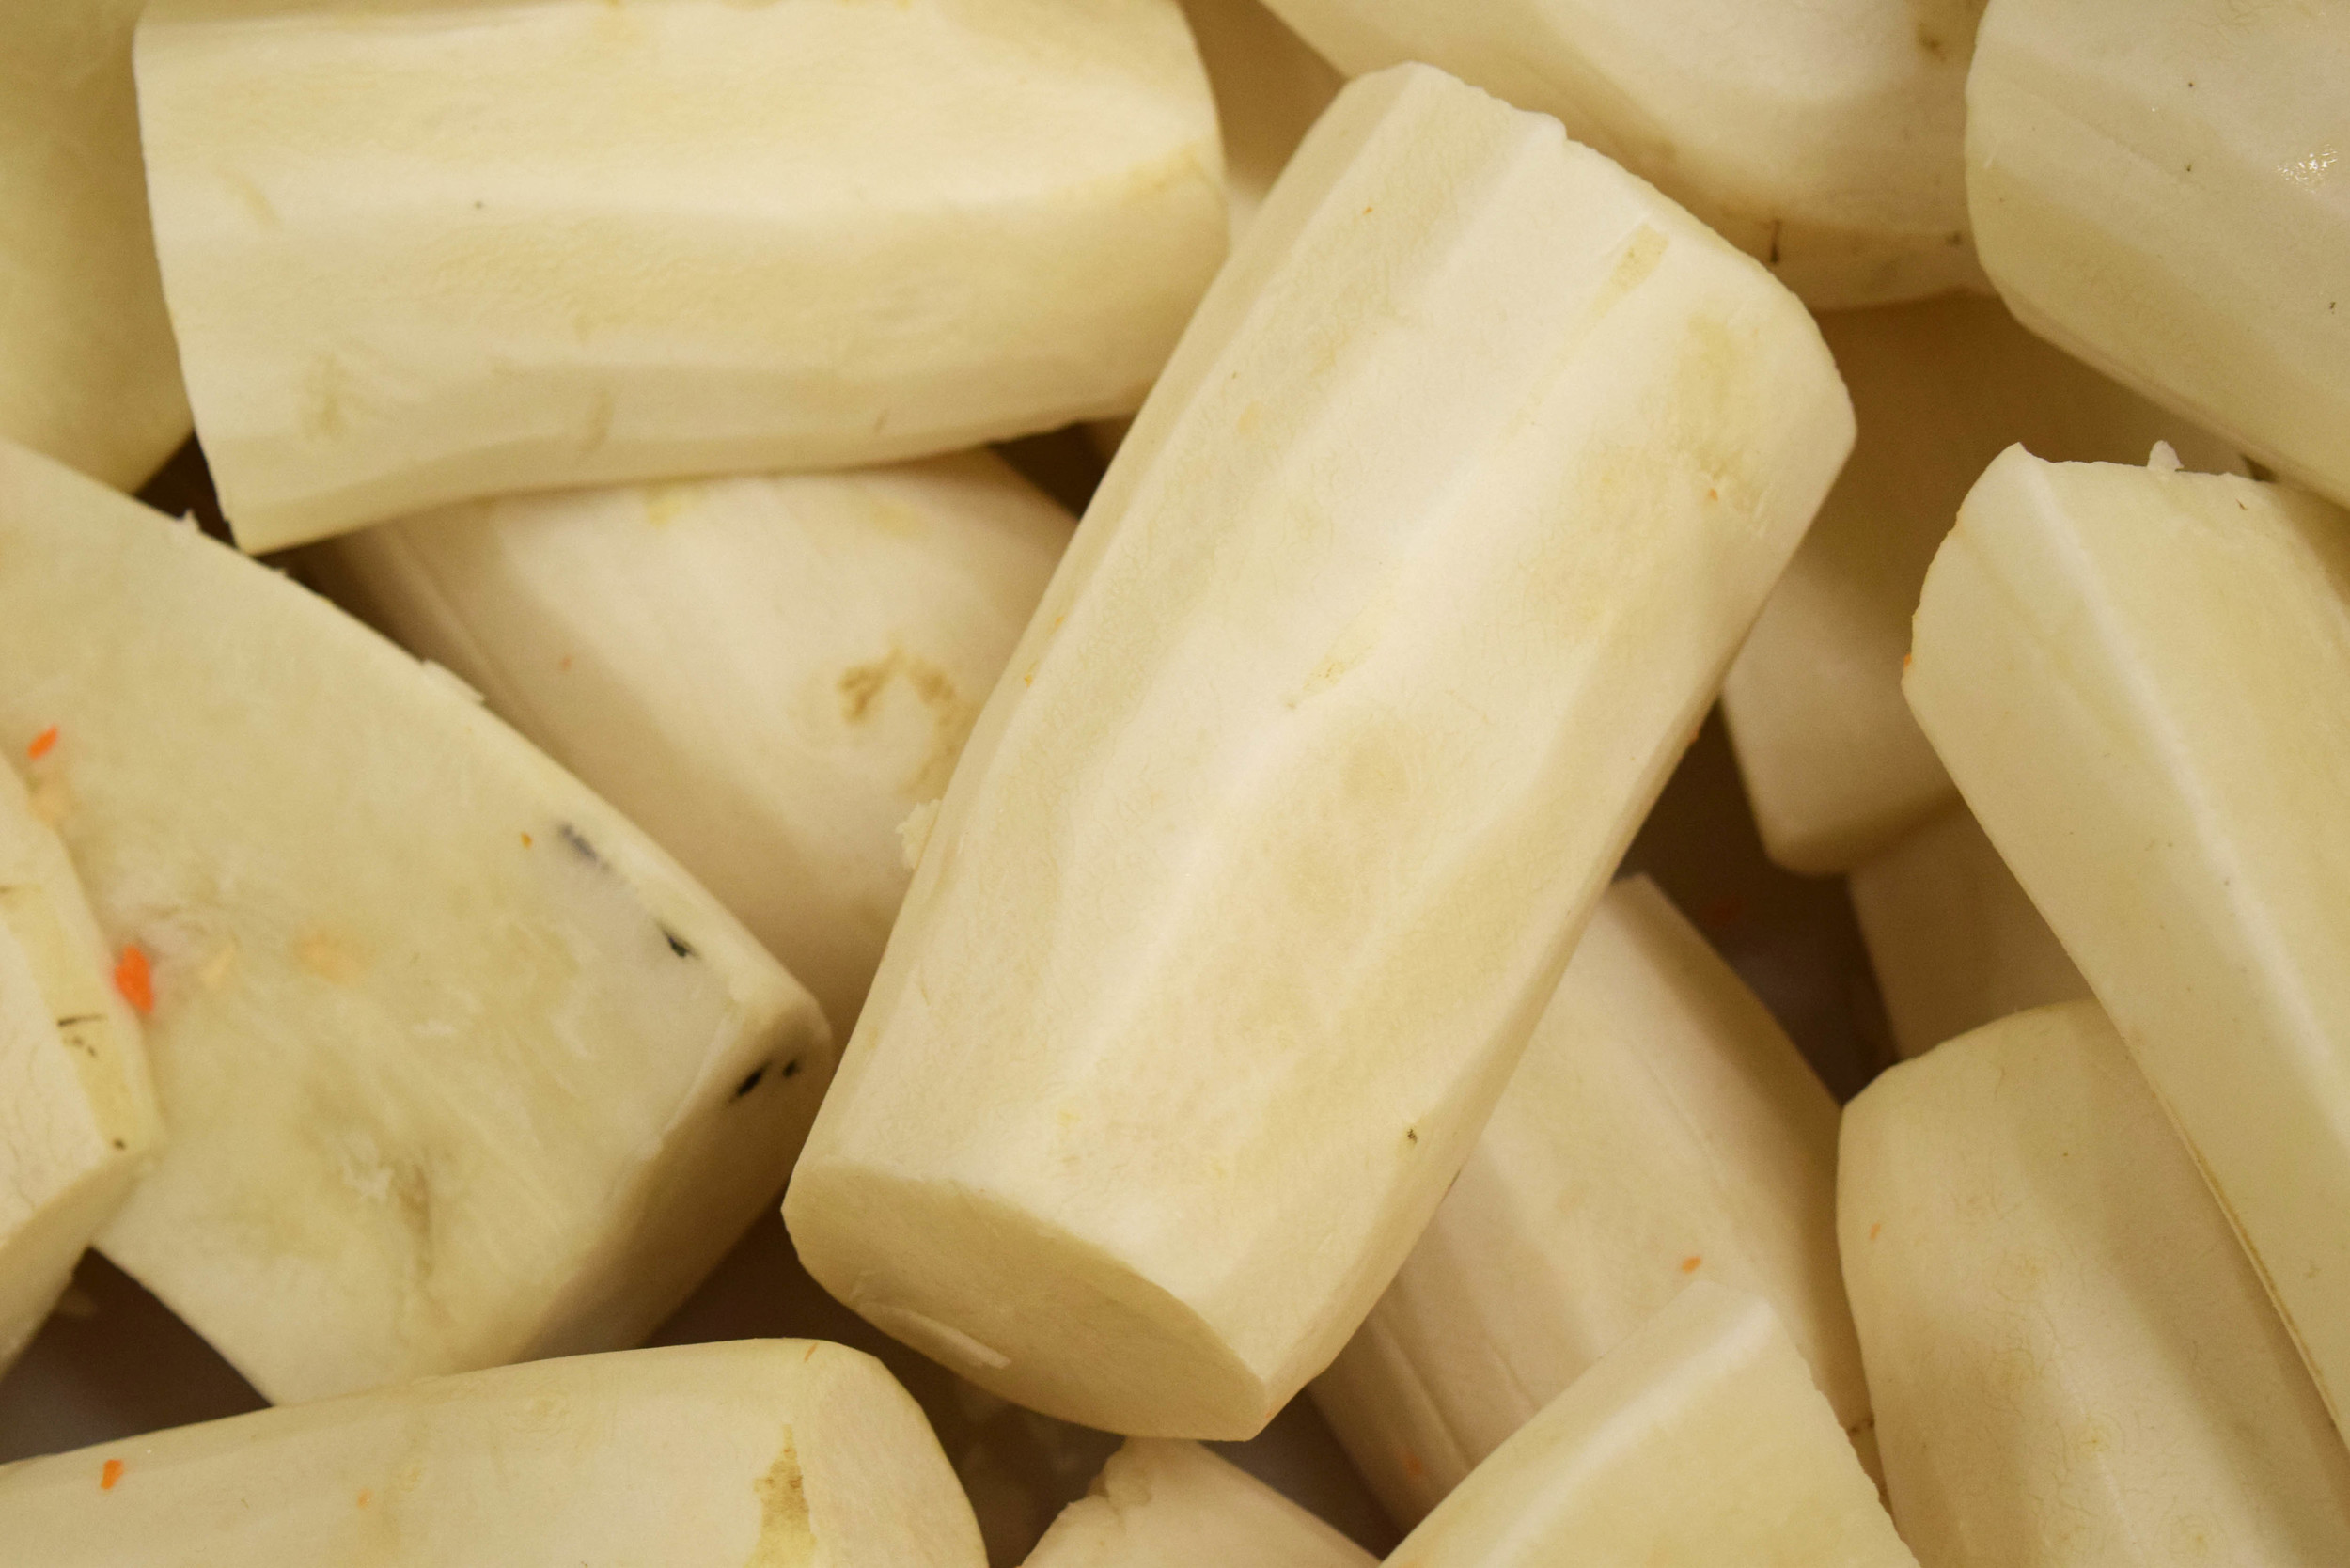 Have you ever seen a peeled Daikon? Here you go!